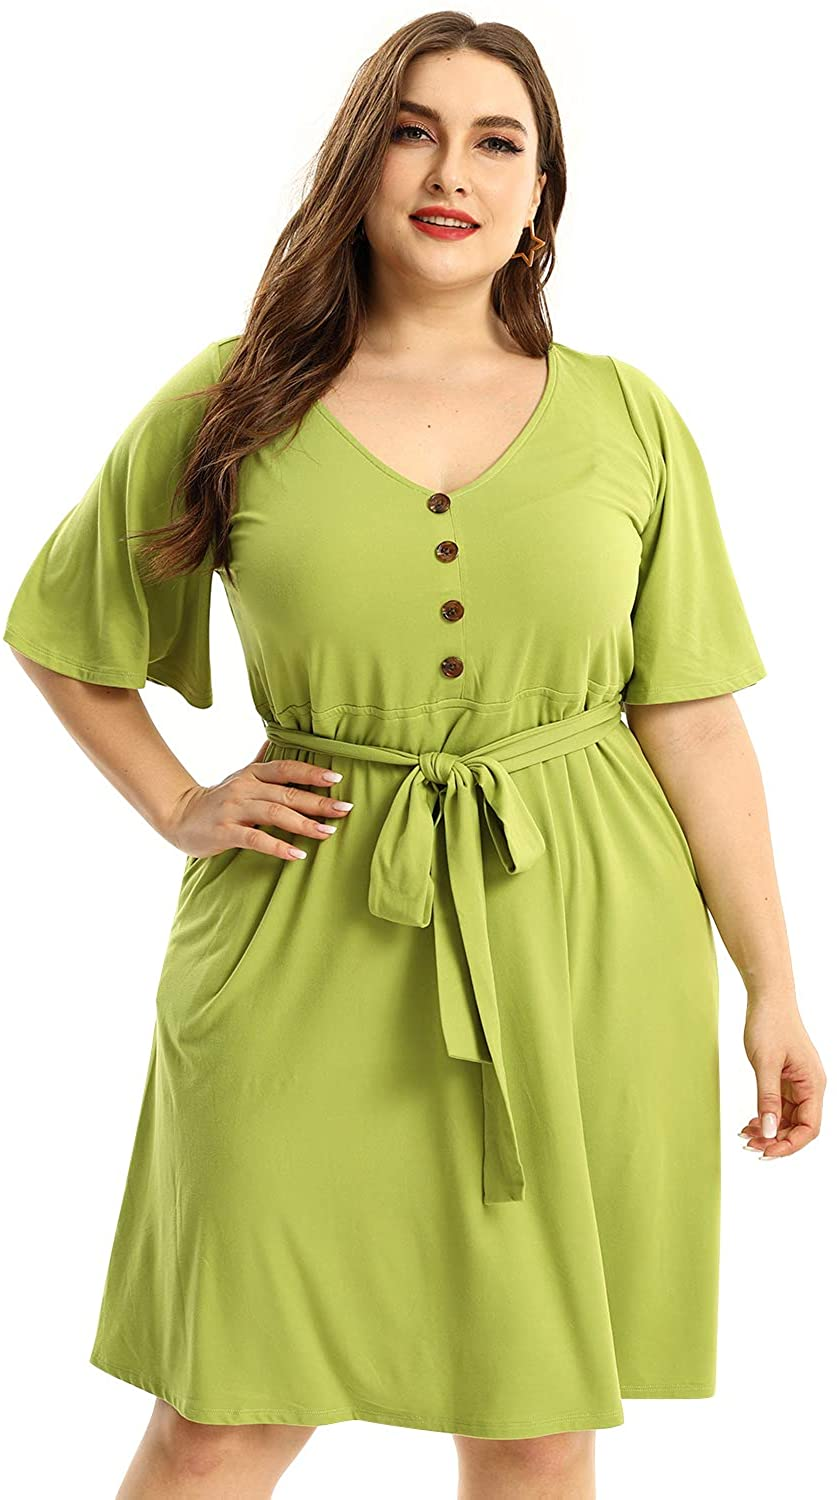 URBAN AFFAIR Women's Plus Size V Neck Short Sleeve Midi Dress Knee Length Button Front with Belt and Pocket